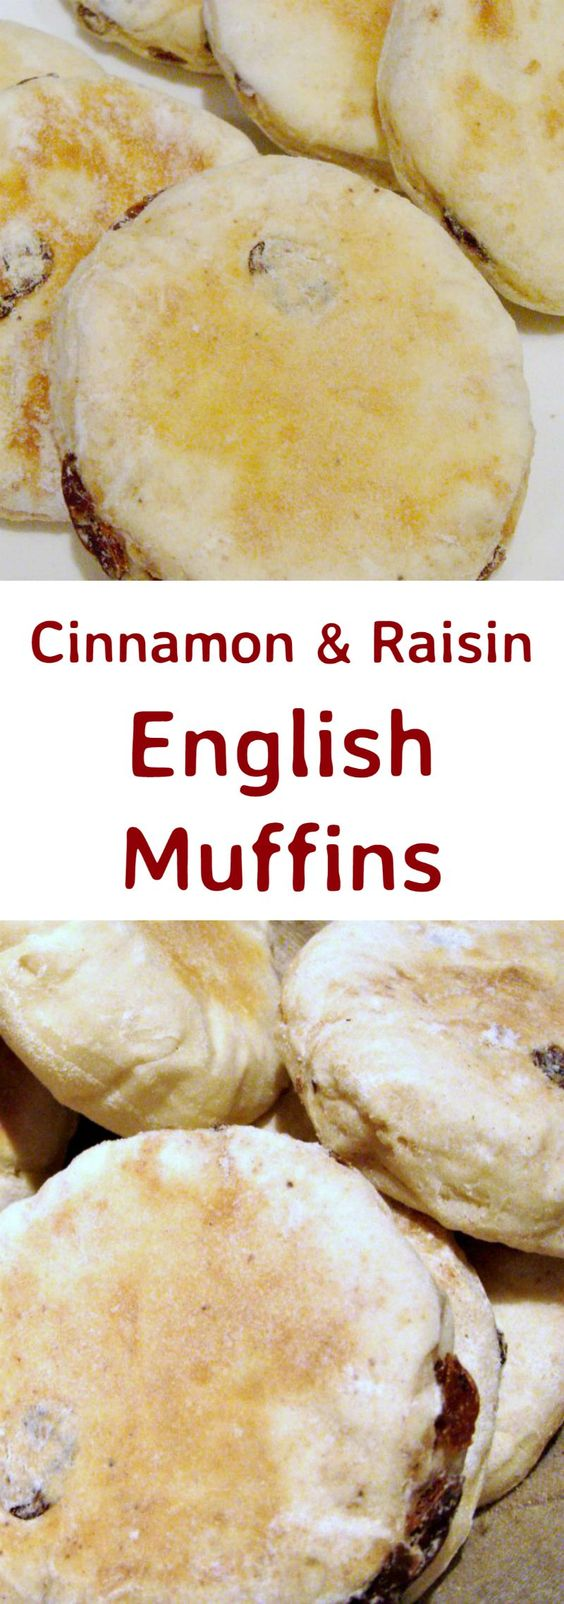 Cinnamon & Raisin English Muffins - Delicious opened and served warm ...